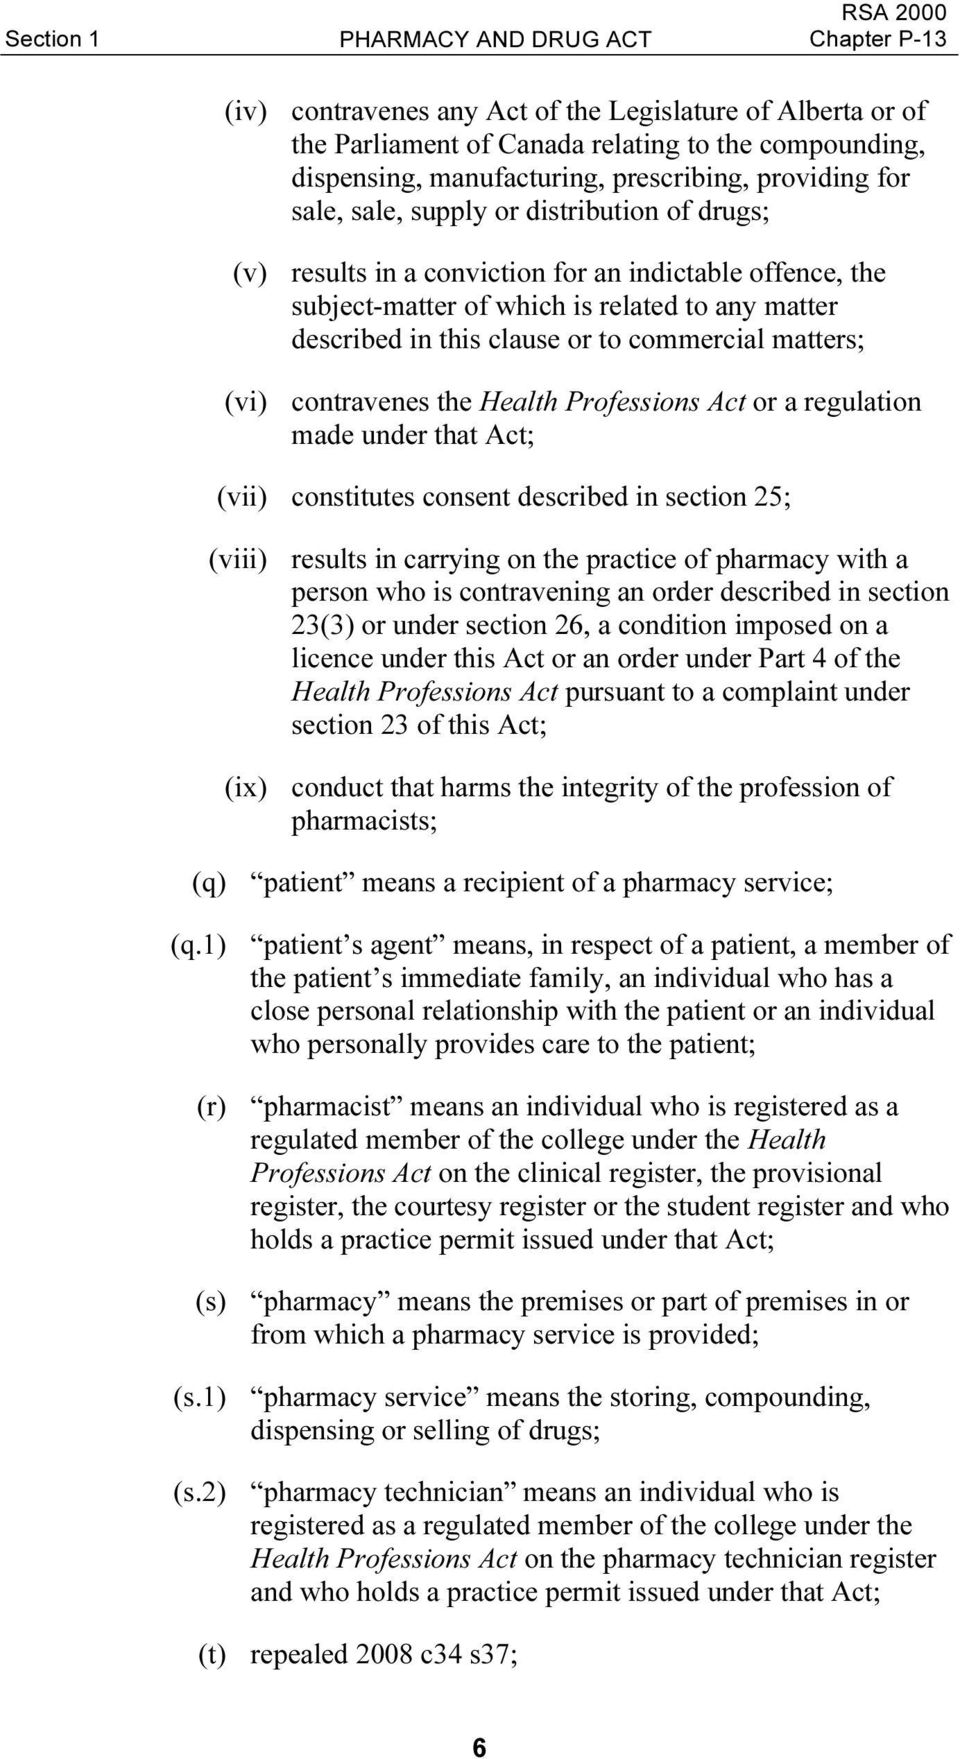 matters; (vi) contravenes the Health Professions Act or a regulation made under that Act; (vii) constitutes consent described in section 25; (viii) results in carrying on the practice of pharmacy